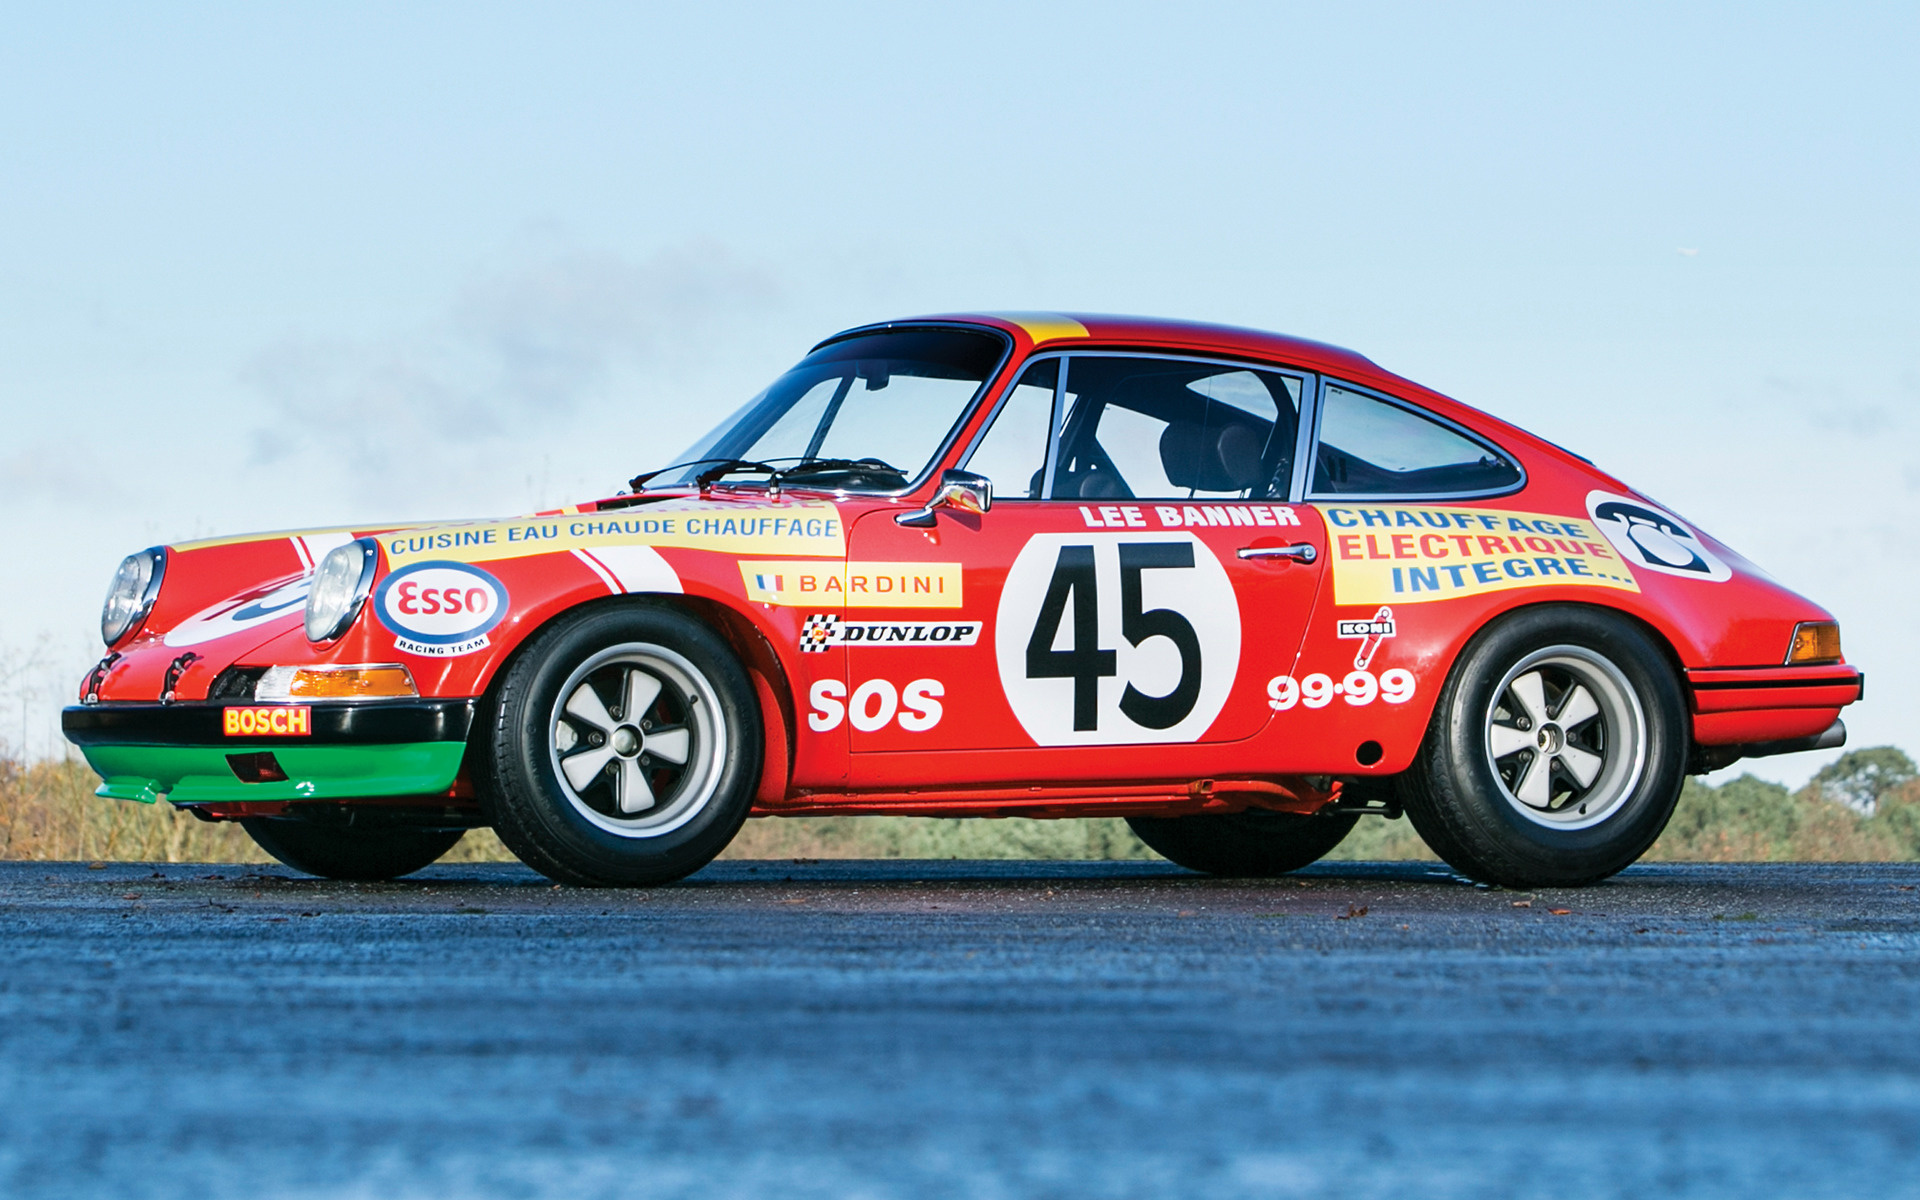 1977 Porsche 911 >> 1969 Porsche 911 S Rally Car - Wallpapers and HD Images